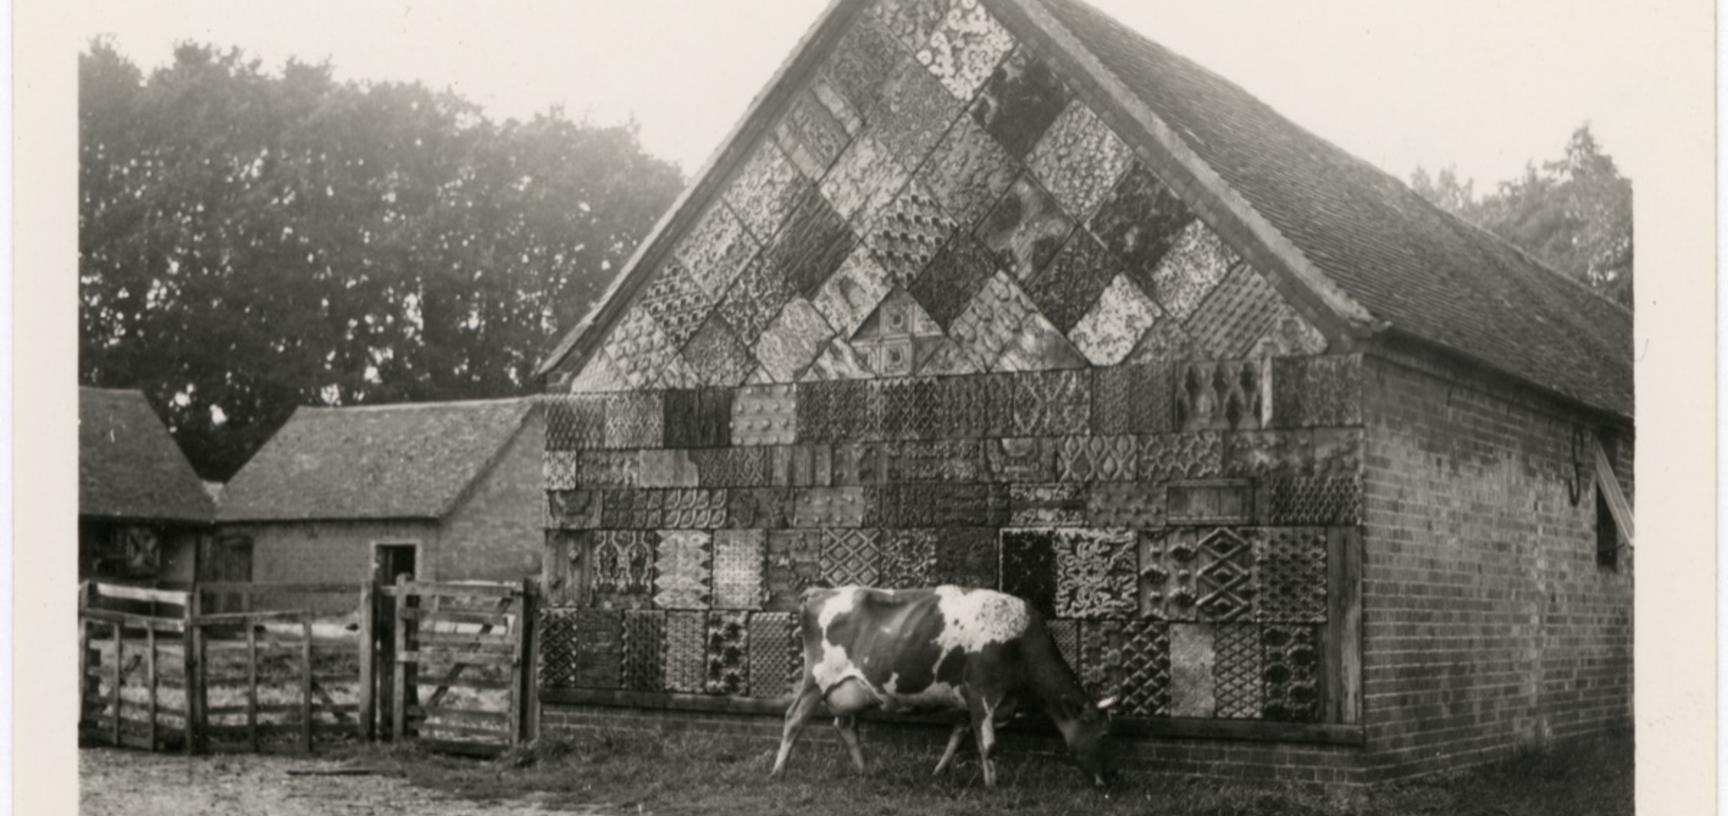 'Harpsden, Oxon. Barn decorated with old printing plates' (typed caption). Photograph by Ellen Ettlinger. Harpsden, Oxfordshire, England. Undated.